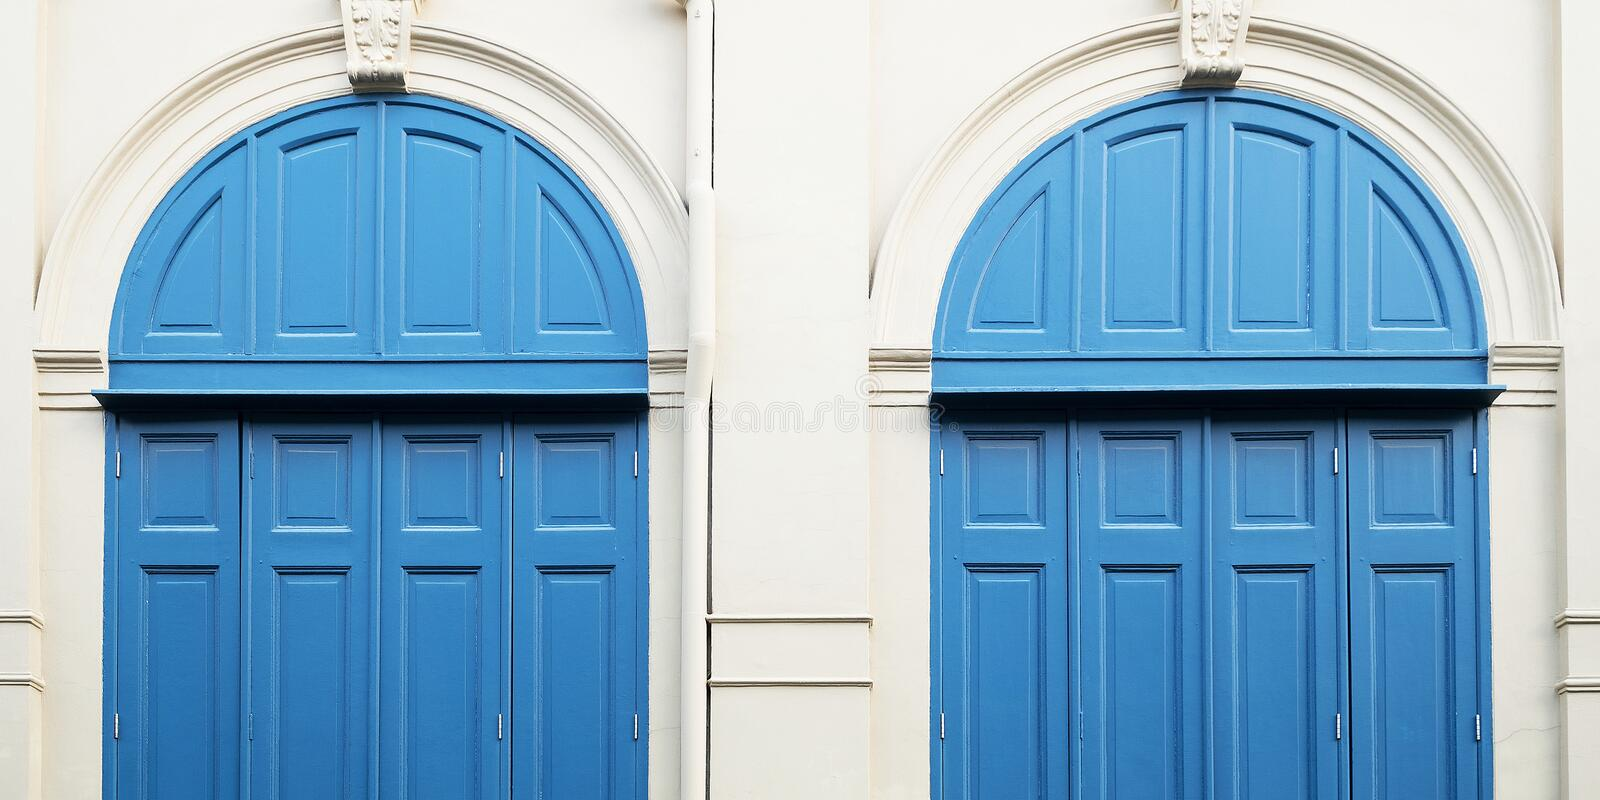 Download White wall and blue doors stock photo. Image of aegean - 104903152